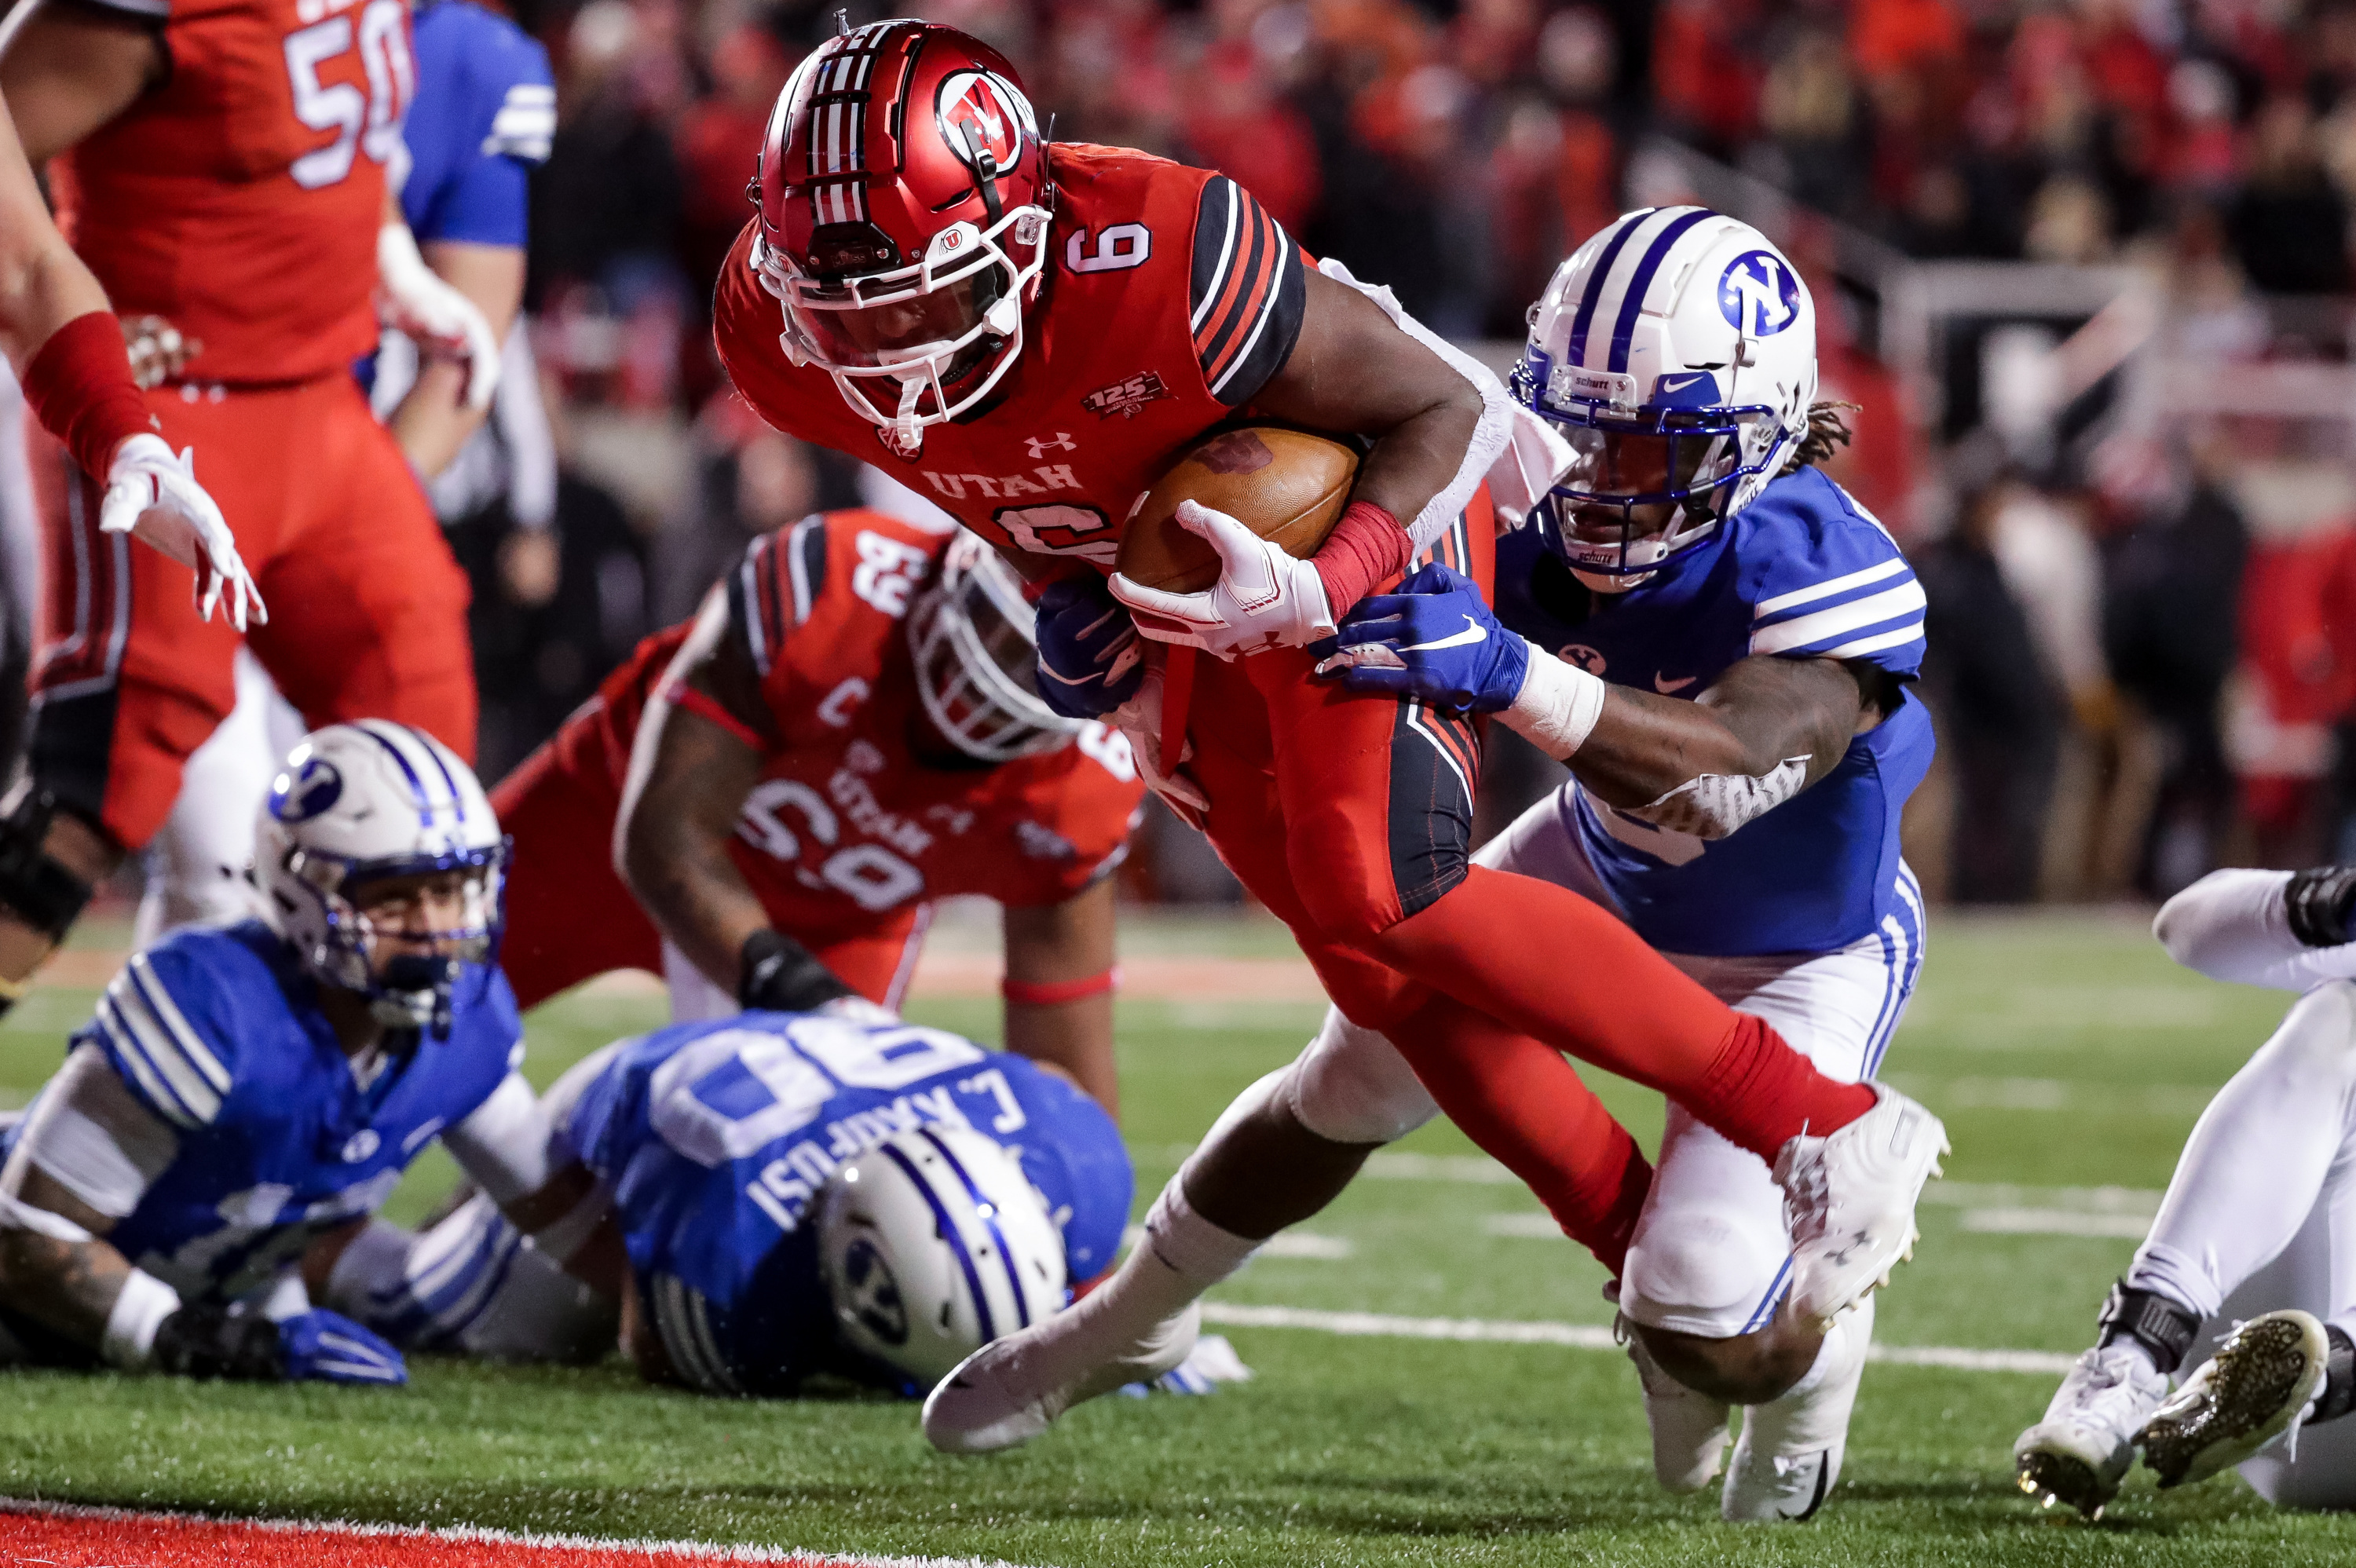 Utah Utes running back Armand Shyne (6) gets past Brigham Young Cougars defensive back Dayan Ghanwoloku (5) to run the ball in for the go-ahead touchdown, putting Utah up 28-27 over the Brigham Young Cougars at Rice-Eccles Stadium in Salt Lake City on Sat